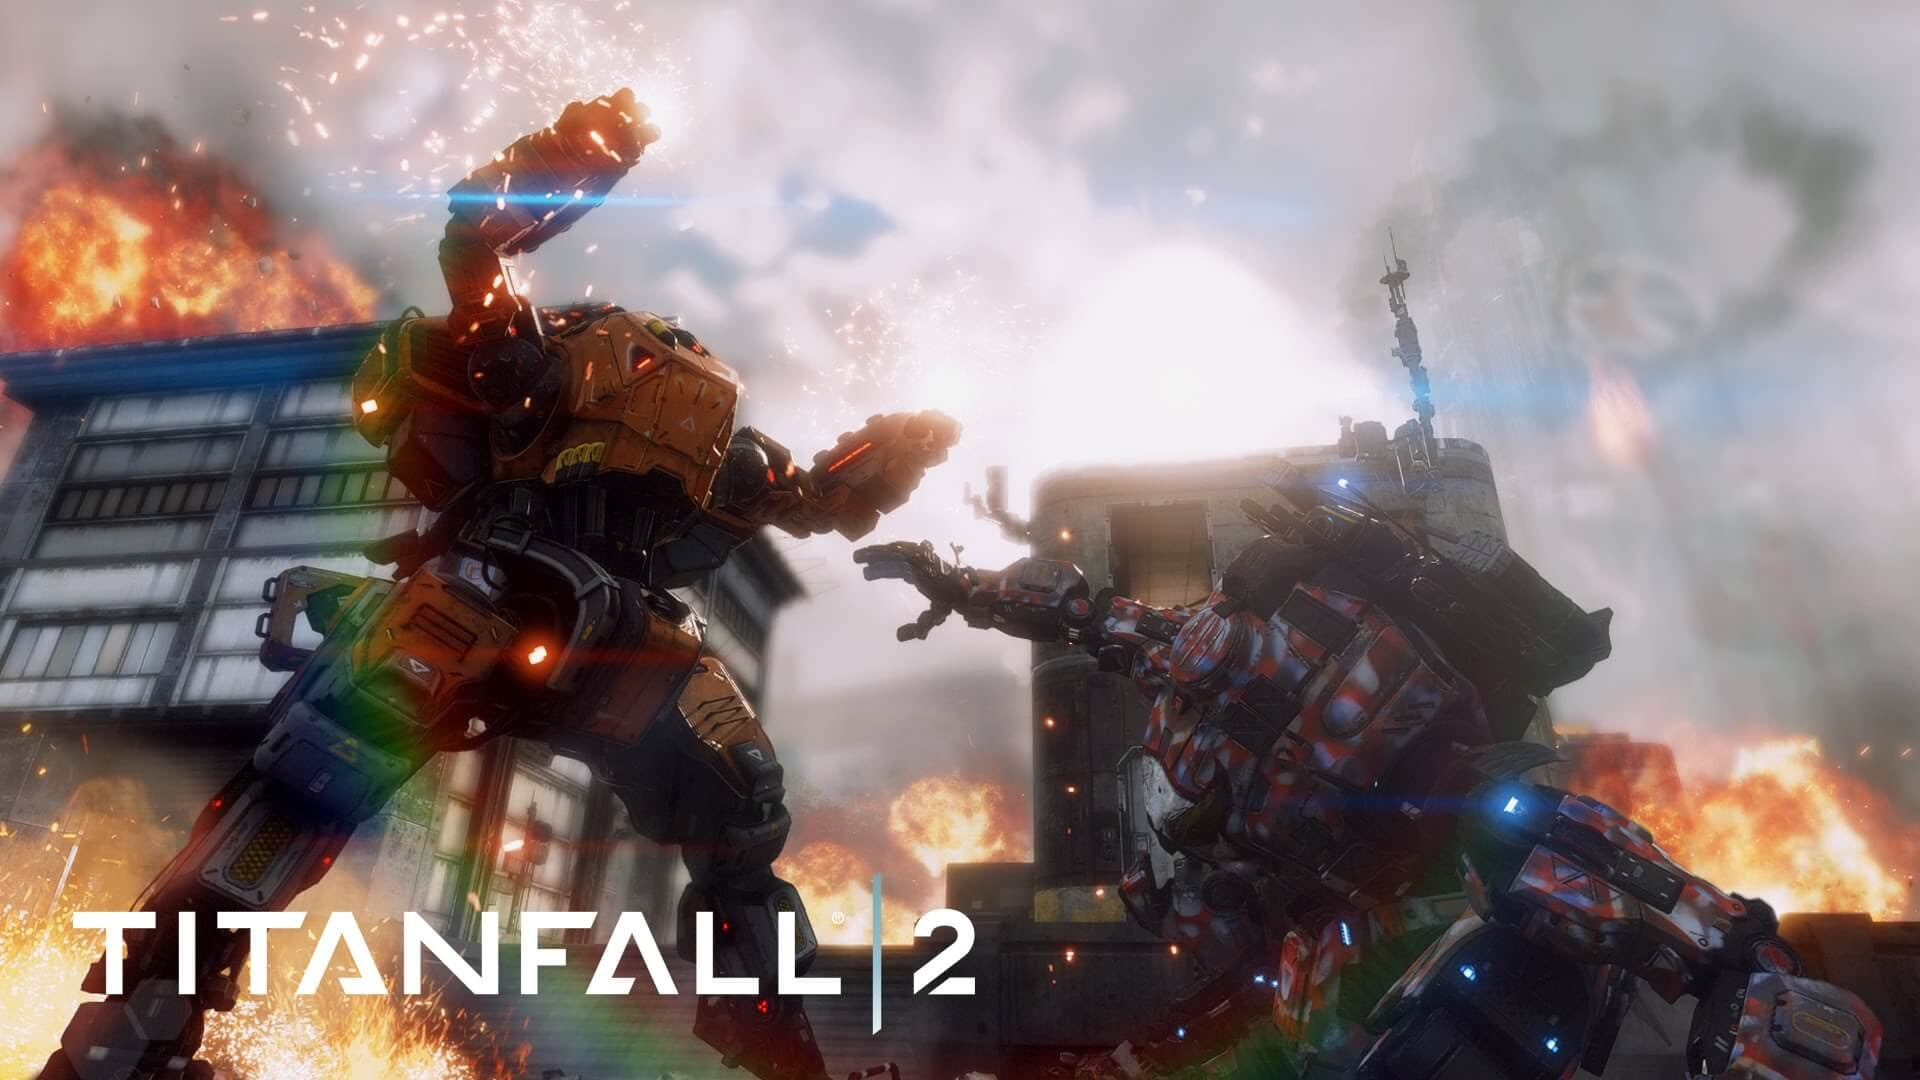 Titanfall 2 Wallpaper For PC